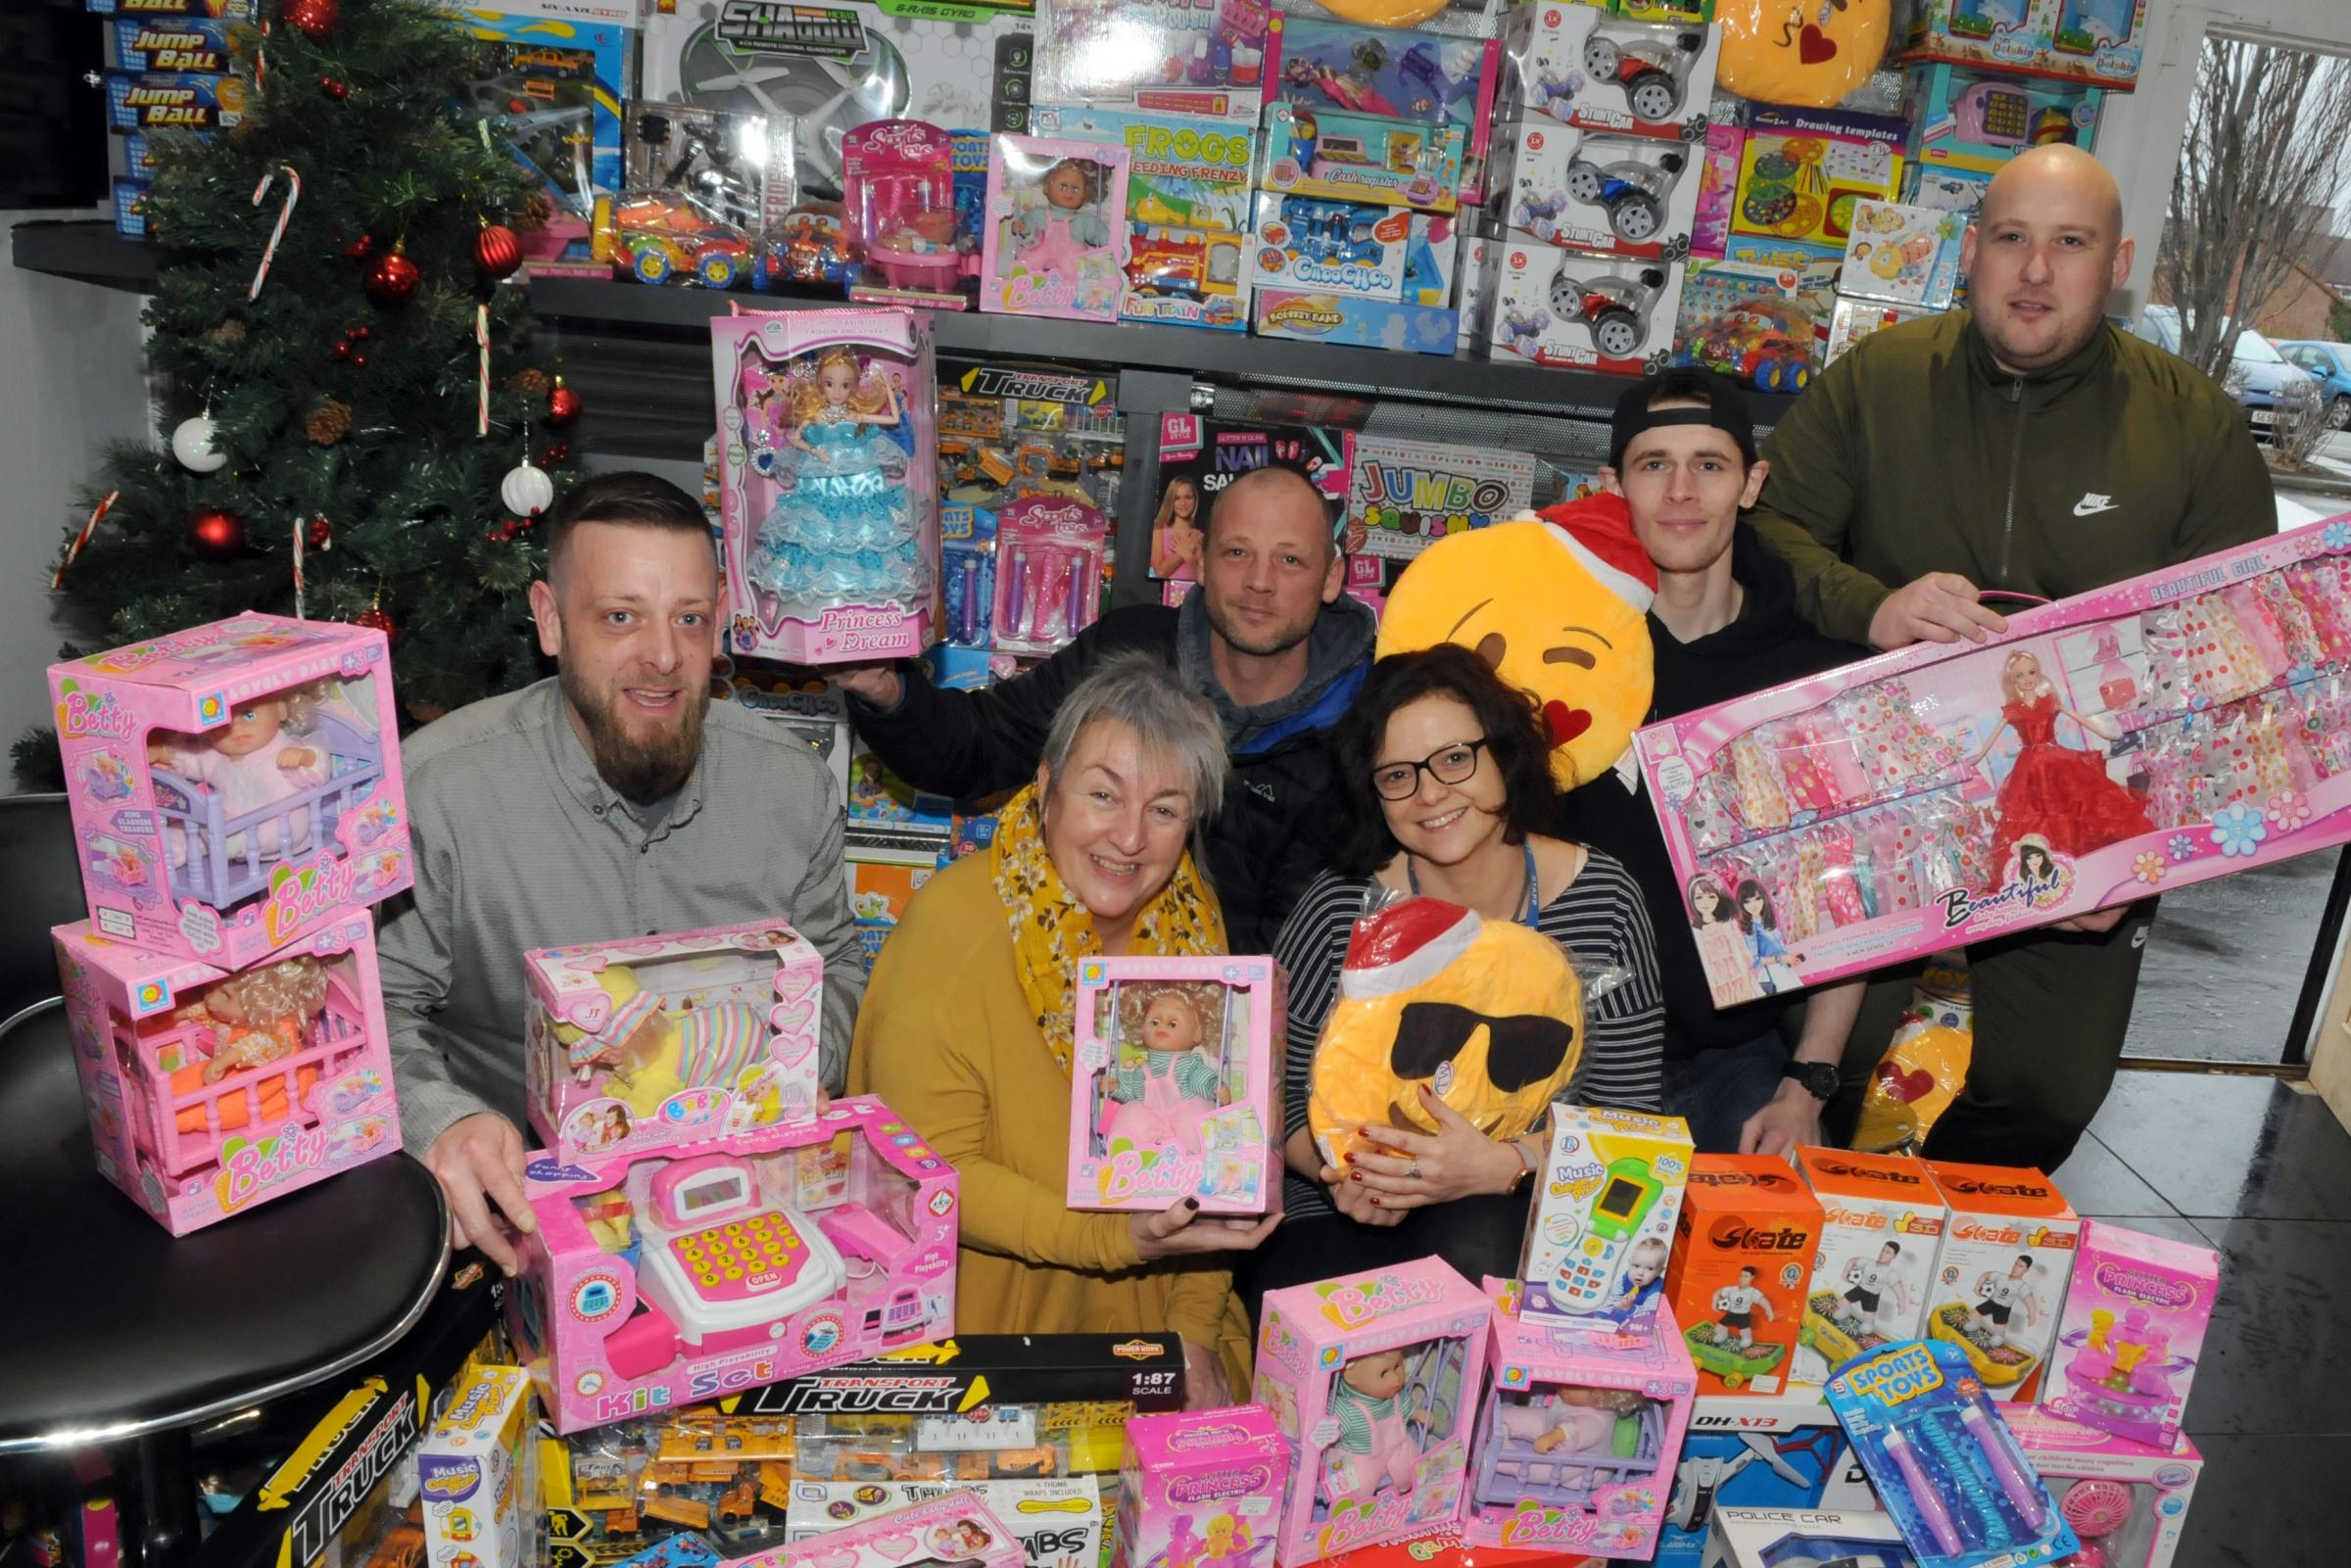 Planet Snax on Orford Lane has donated £2,500 worth of toys to the St Joseph's Family Centre.